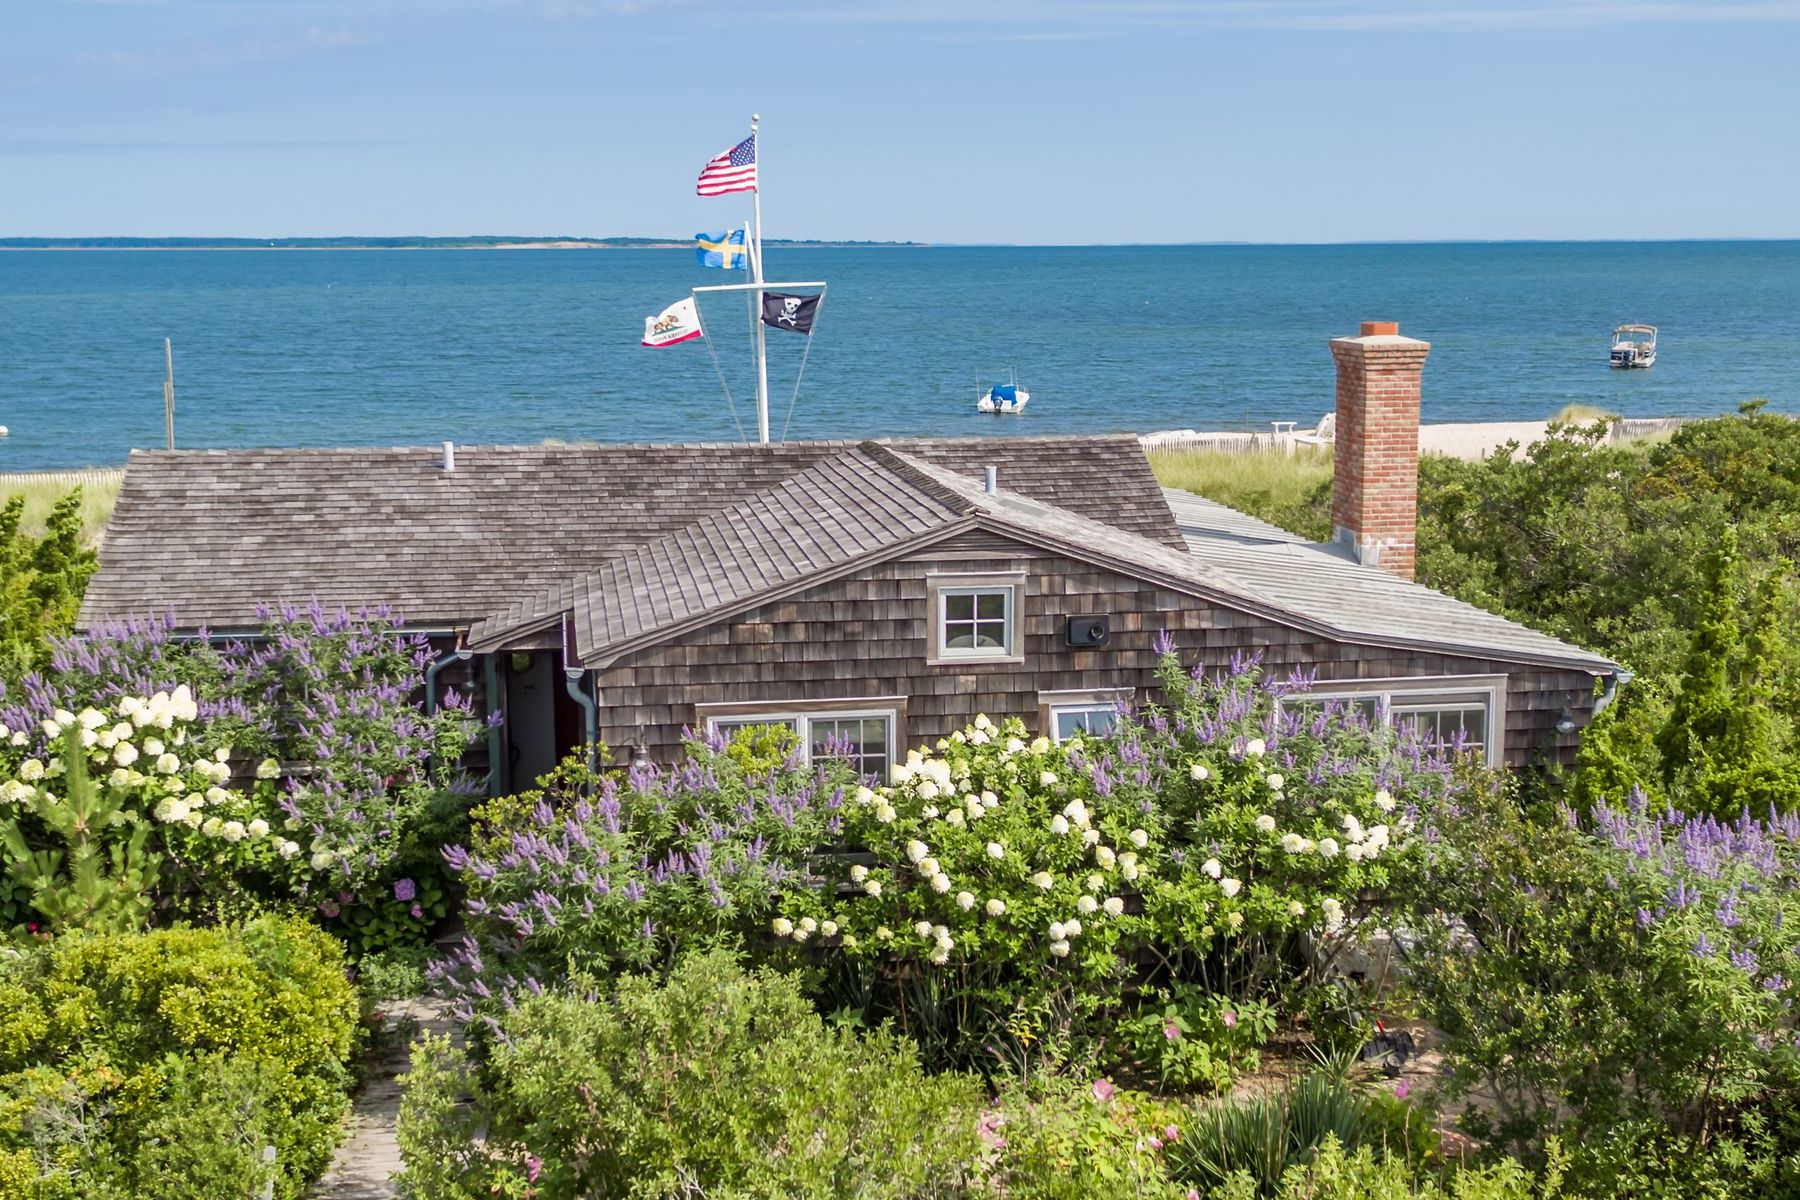 Single Family Homes for Active at Idyllic Waterfront Cottage 204 Shore Road Amagansett, New York 11930 United States